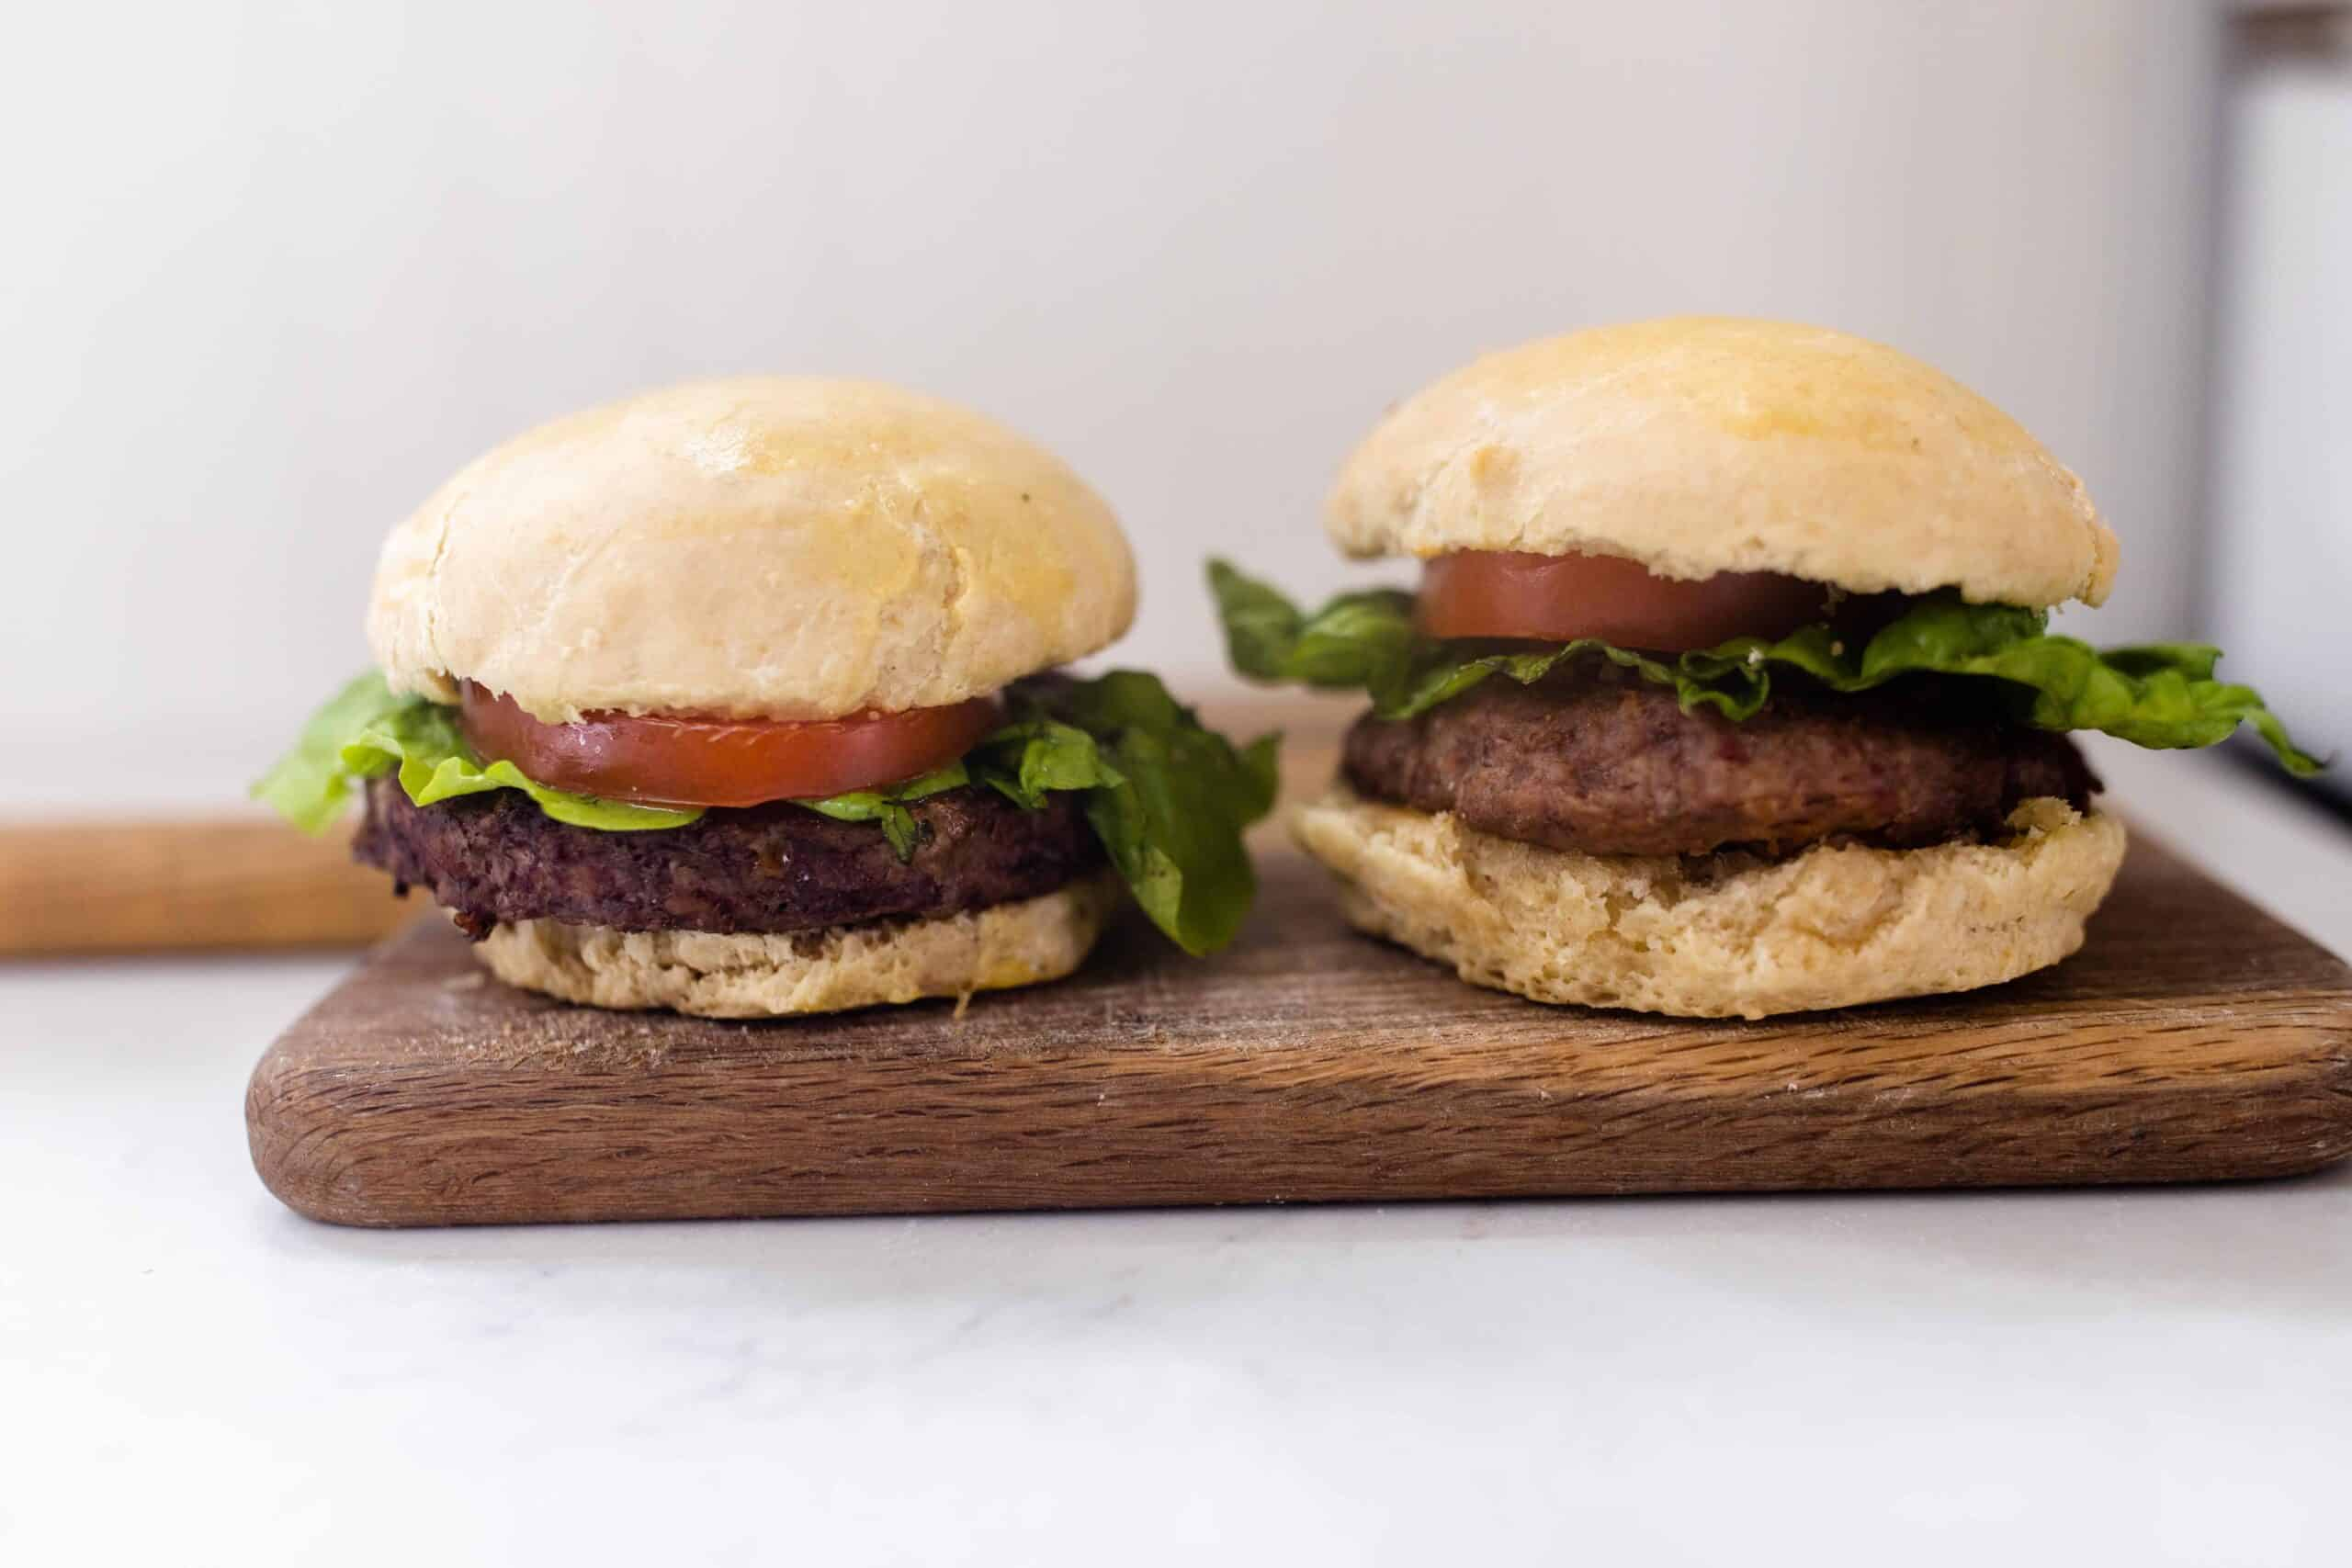 two burgers with tomato and lettuce on homemade sourdough buns on a cutting board